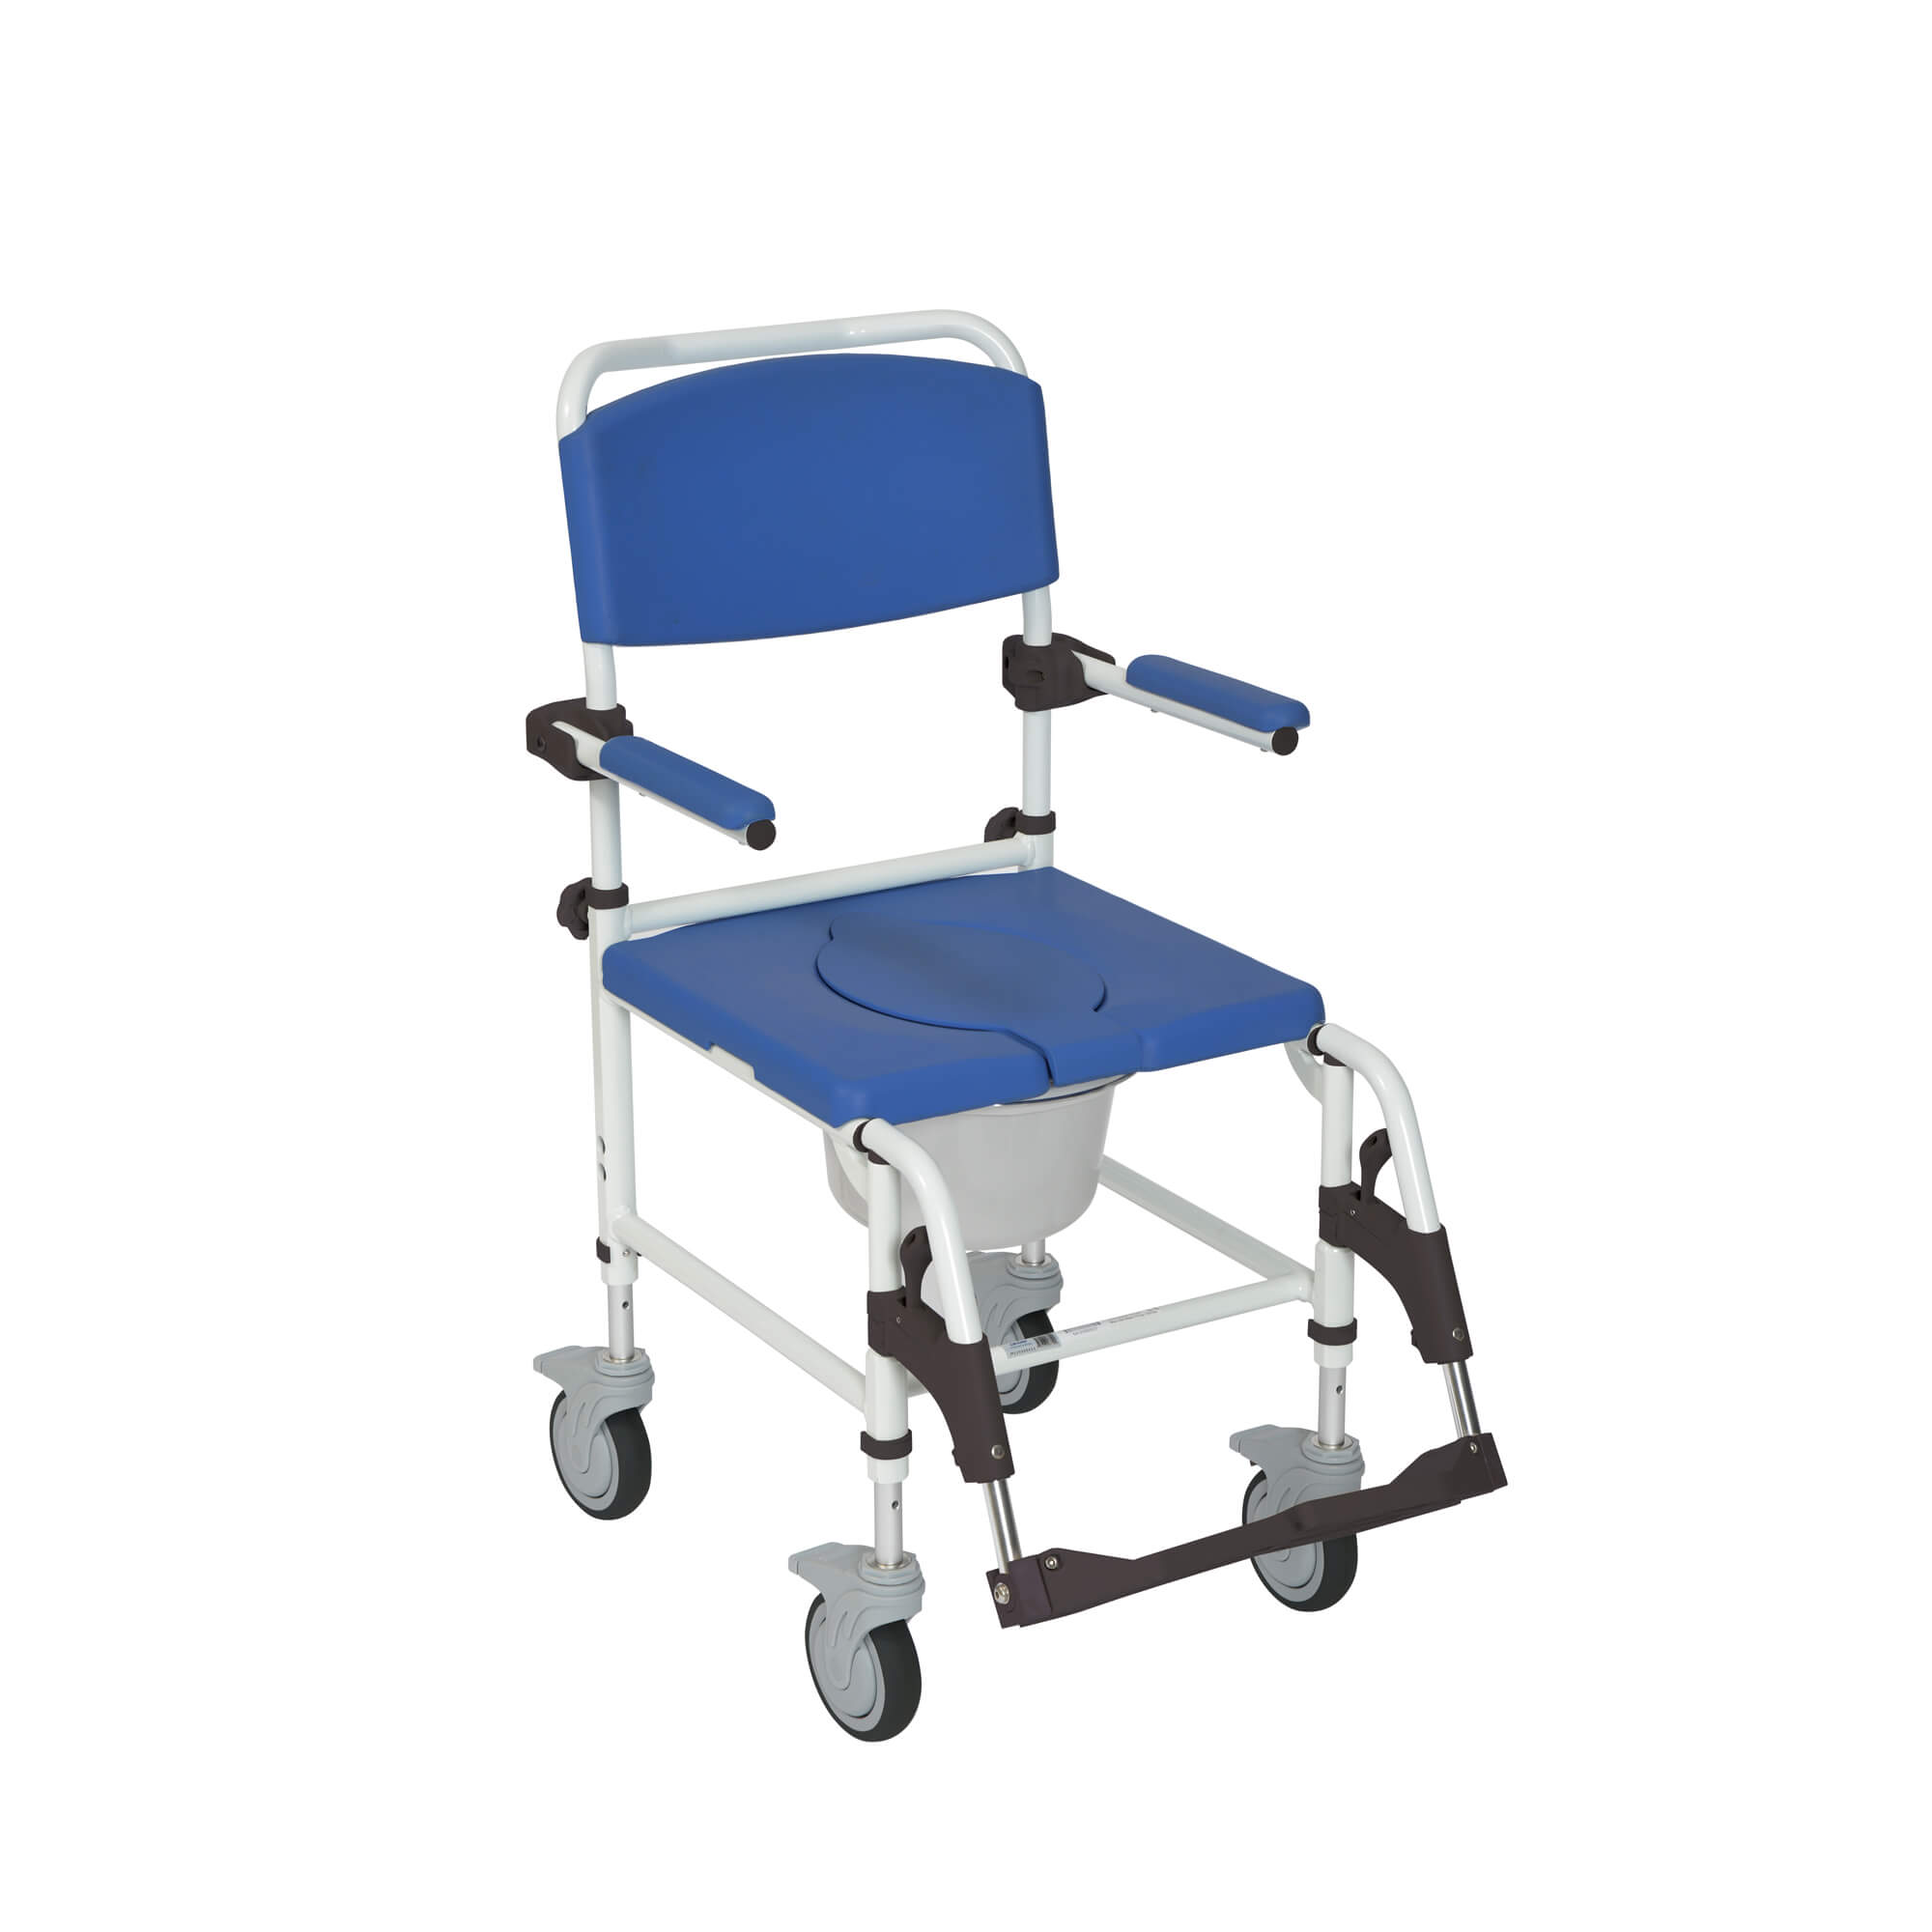 transport chair walgreens design anthropometrics aluminum shower commode padded seat back